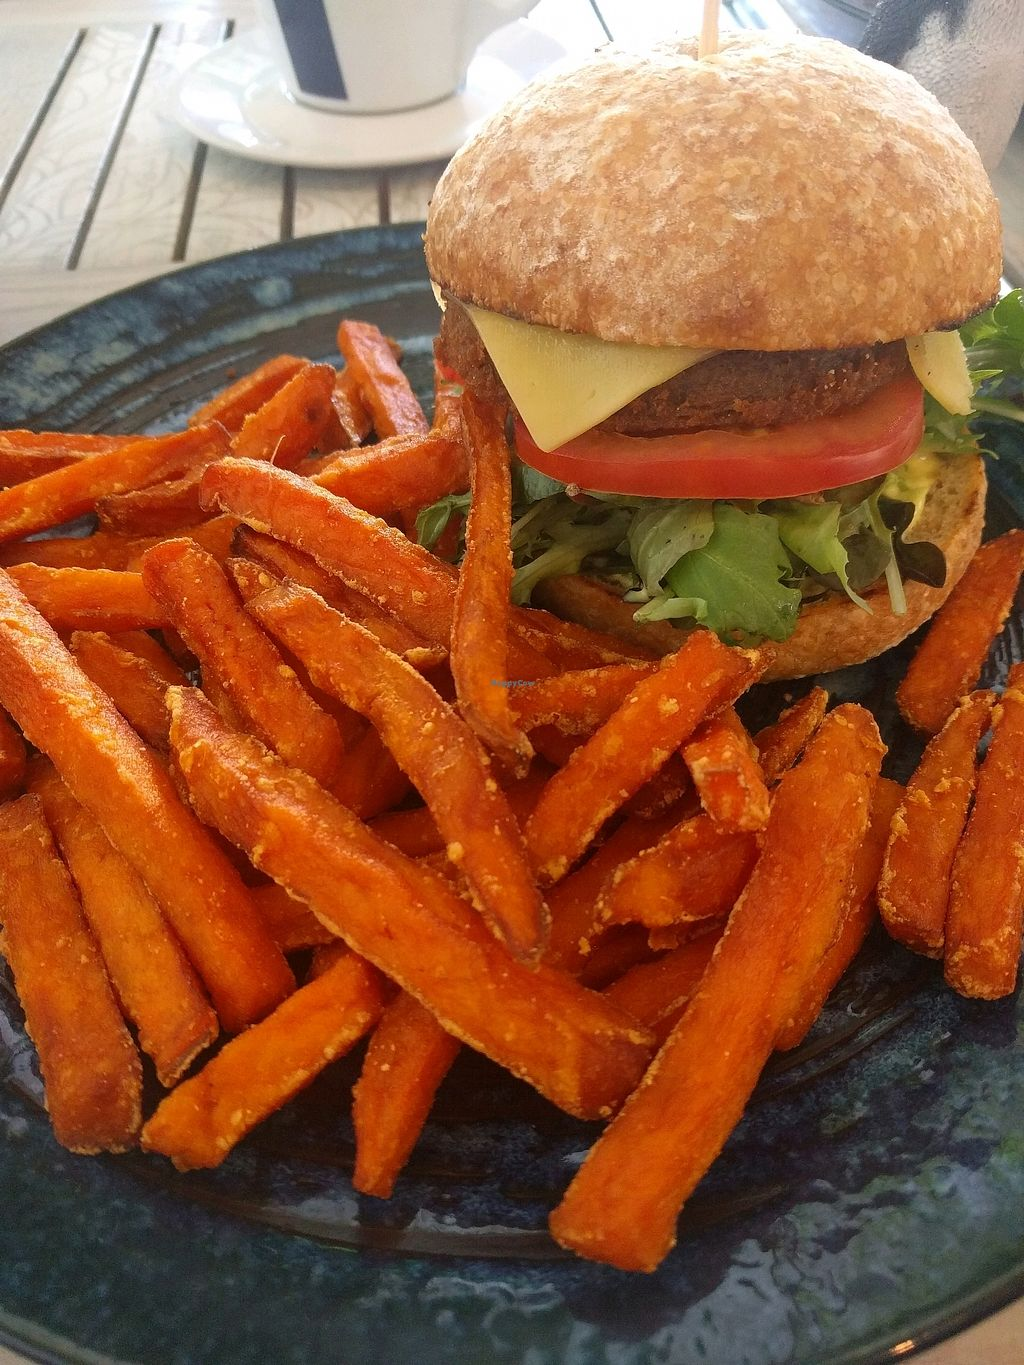 "Photo of Nature Cafe/Bar  by <a href=""/members/profile/LeeZomBee"">LeeZomBee</a> <br/>Southern style 'chicken' burger with sweet potato fries... amazing ? <br/> March 31, 2018  - <a href='/contact/abuse/image/104563/378633'>Report</a>"